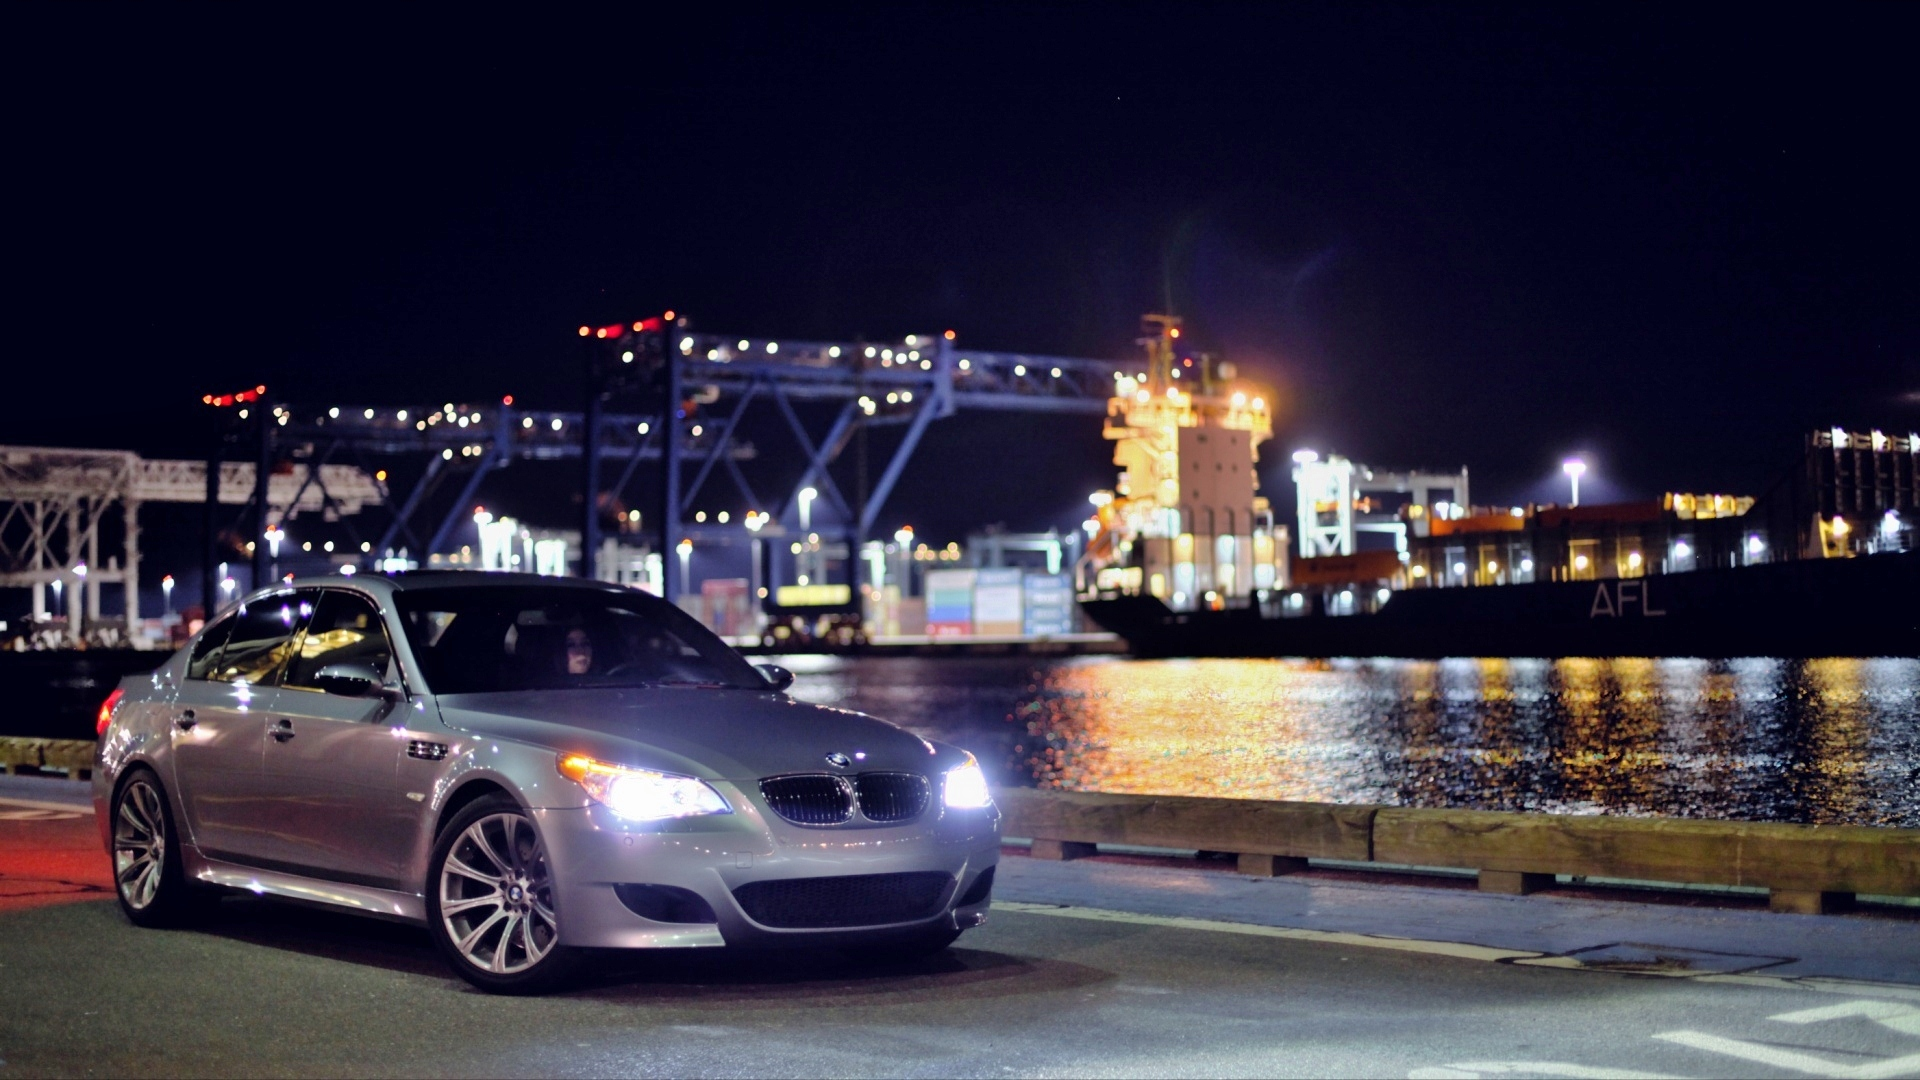 E60 M5 Poster - BMW M5 Forum and M6 Forums